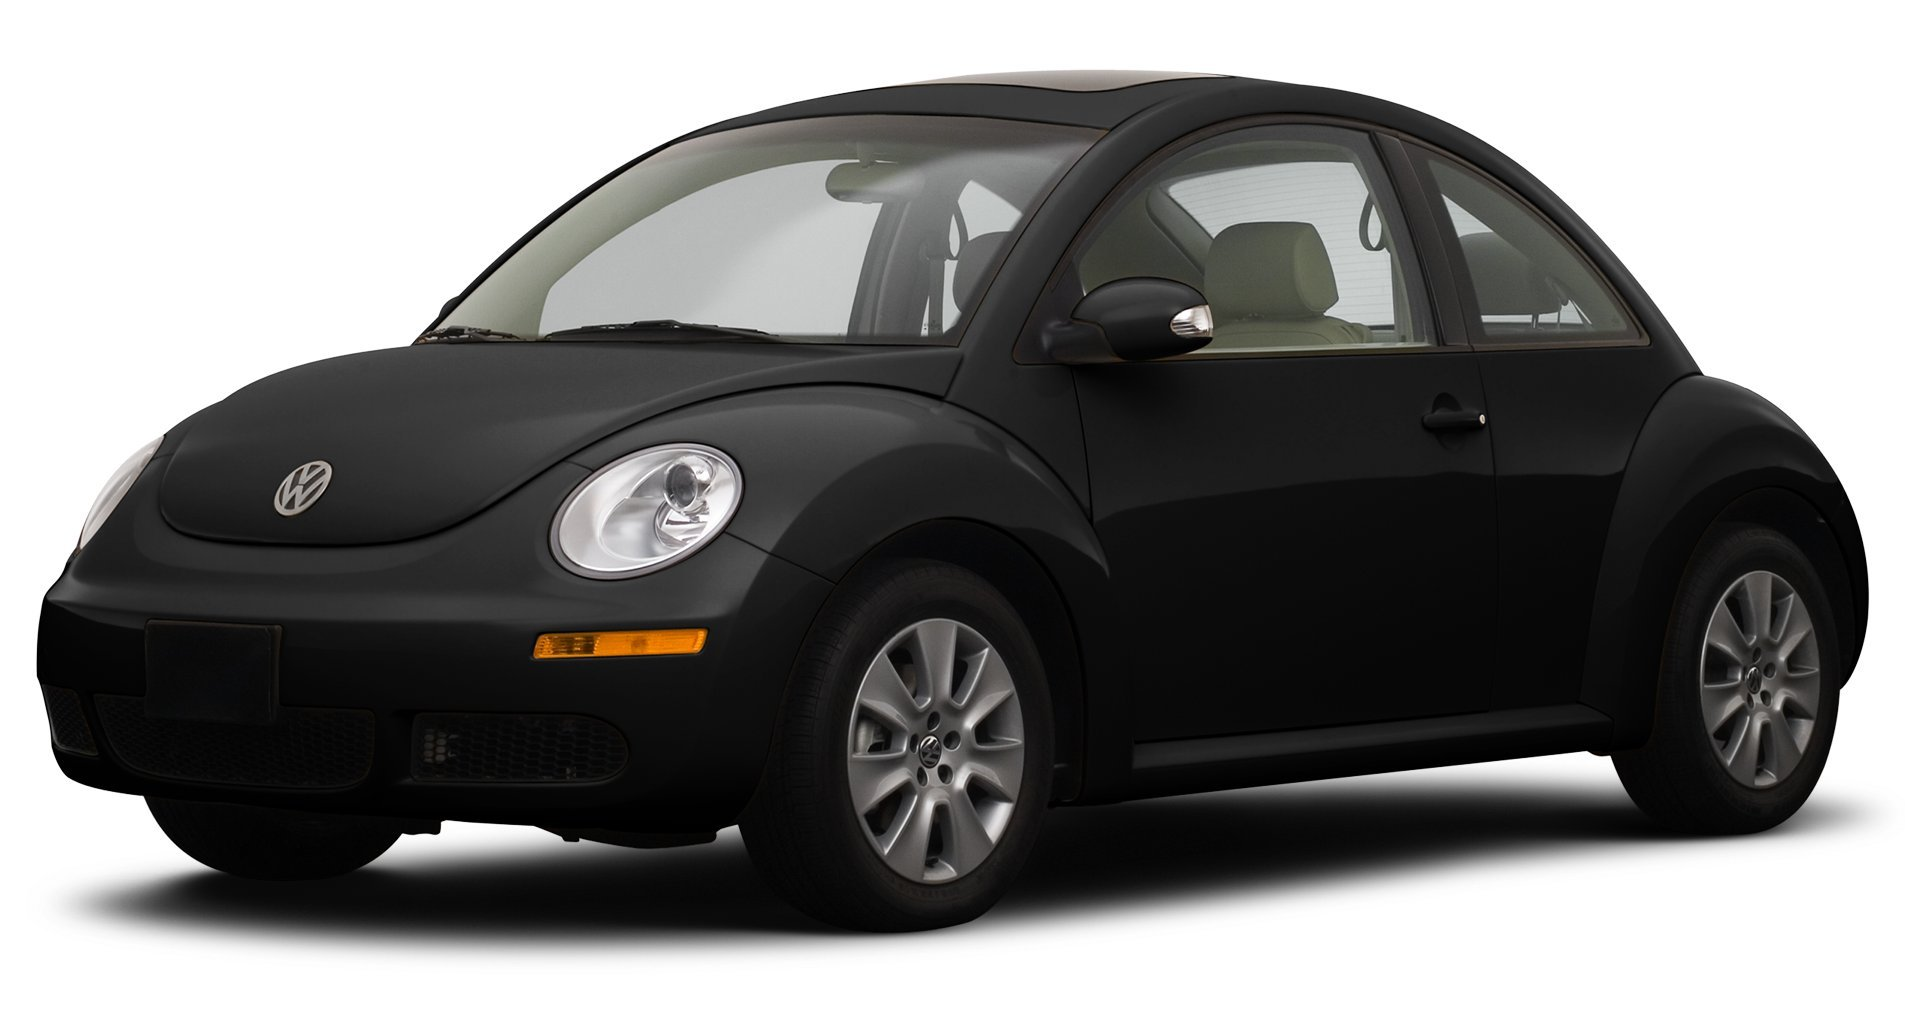 2008 volkswagen beetle reviews images and specs vehicles. Black Bedroom Furniture Sets. Home Design Ideas